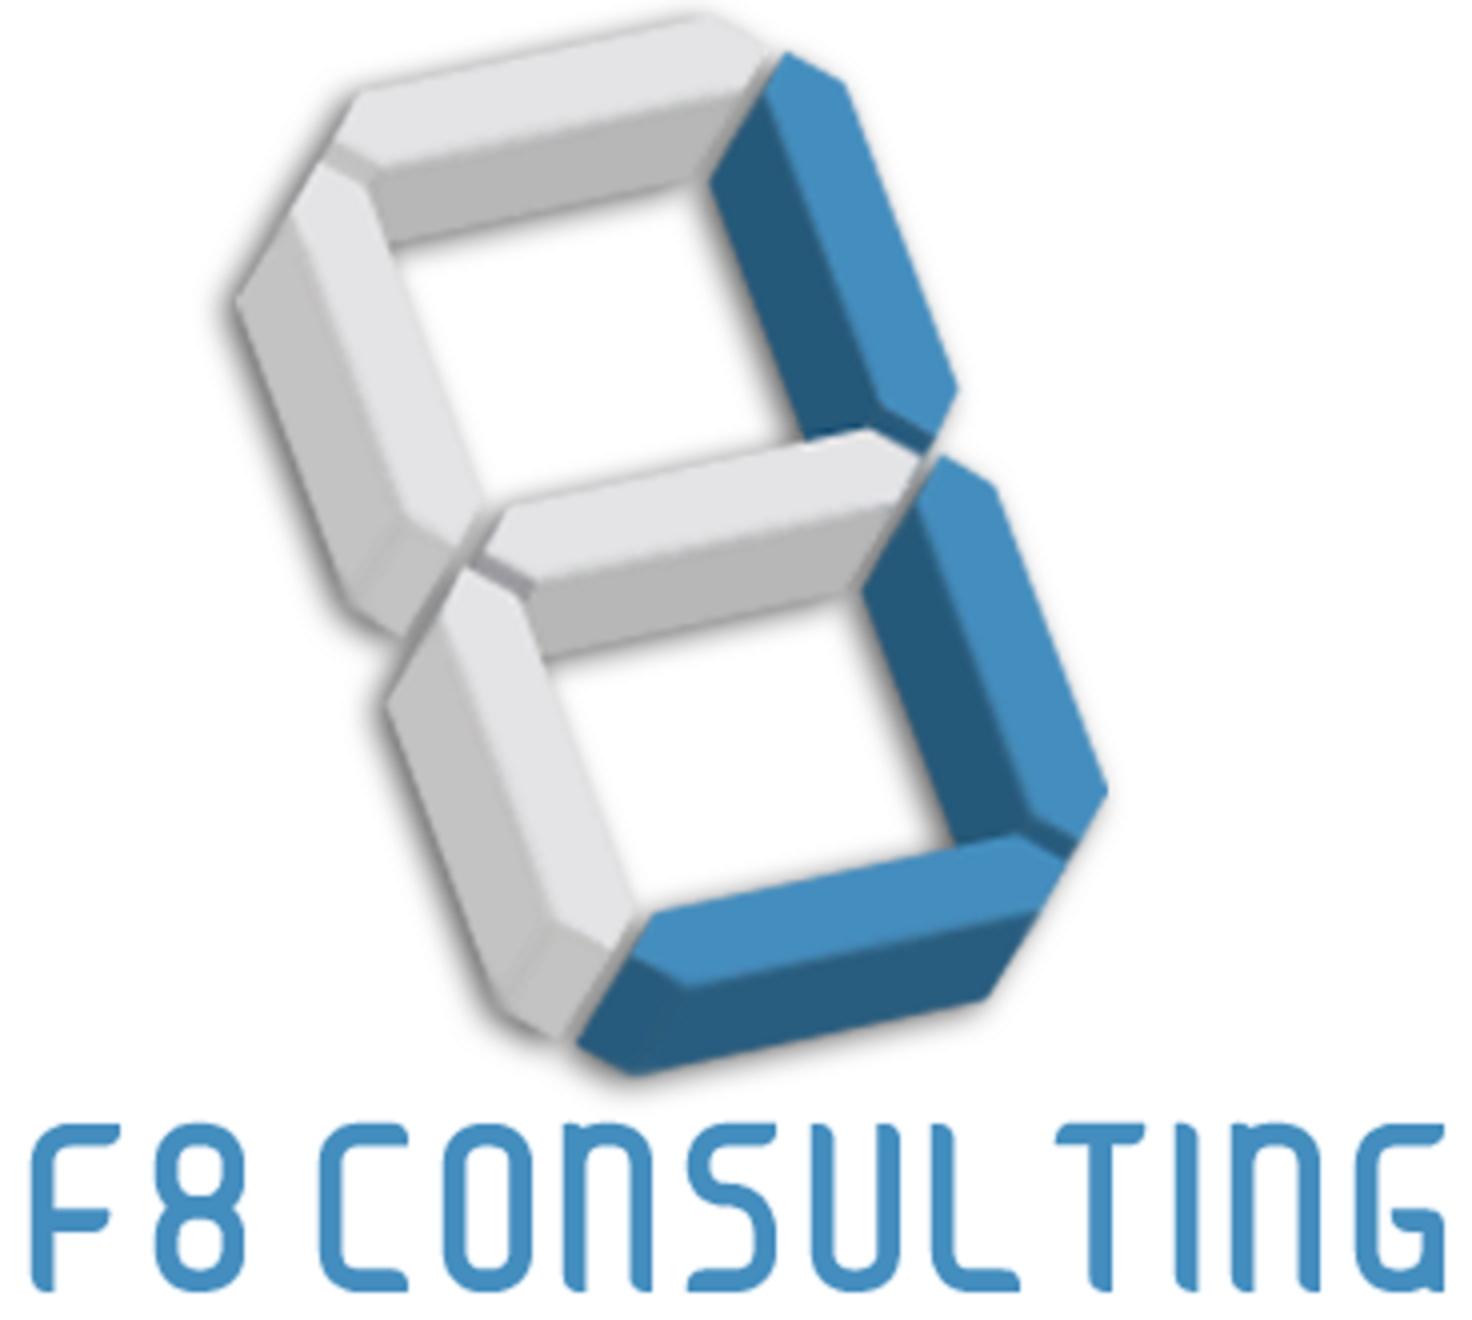 F8 Consulting